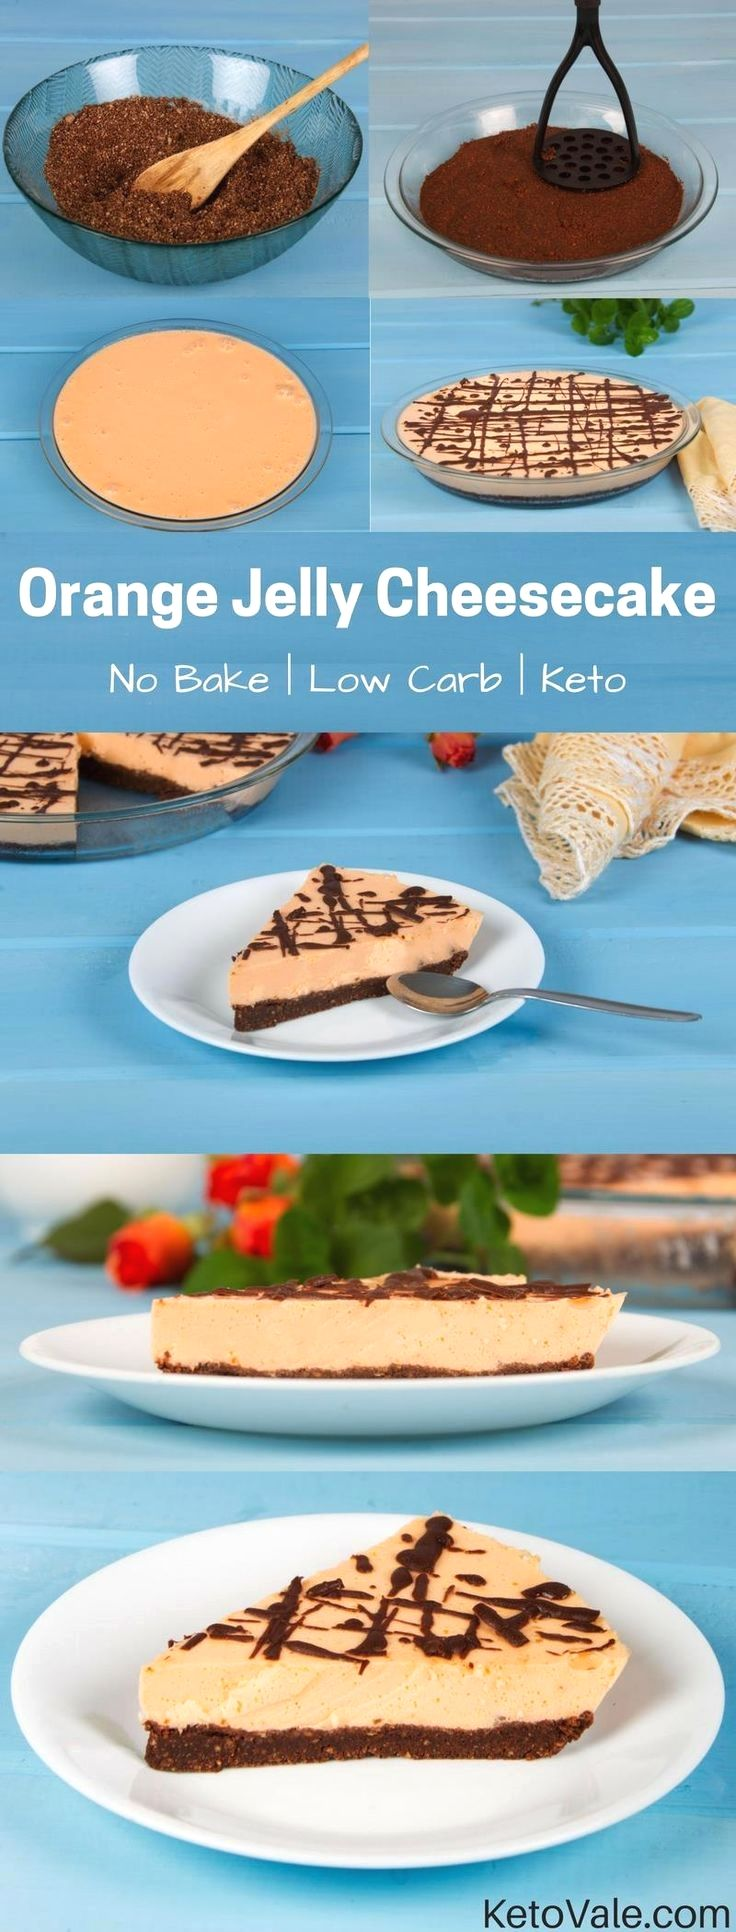 This Jelly Cheesecake is delicious and very simple to make. It does not require ...